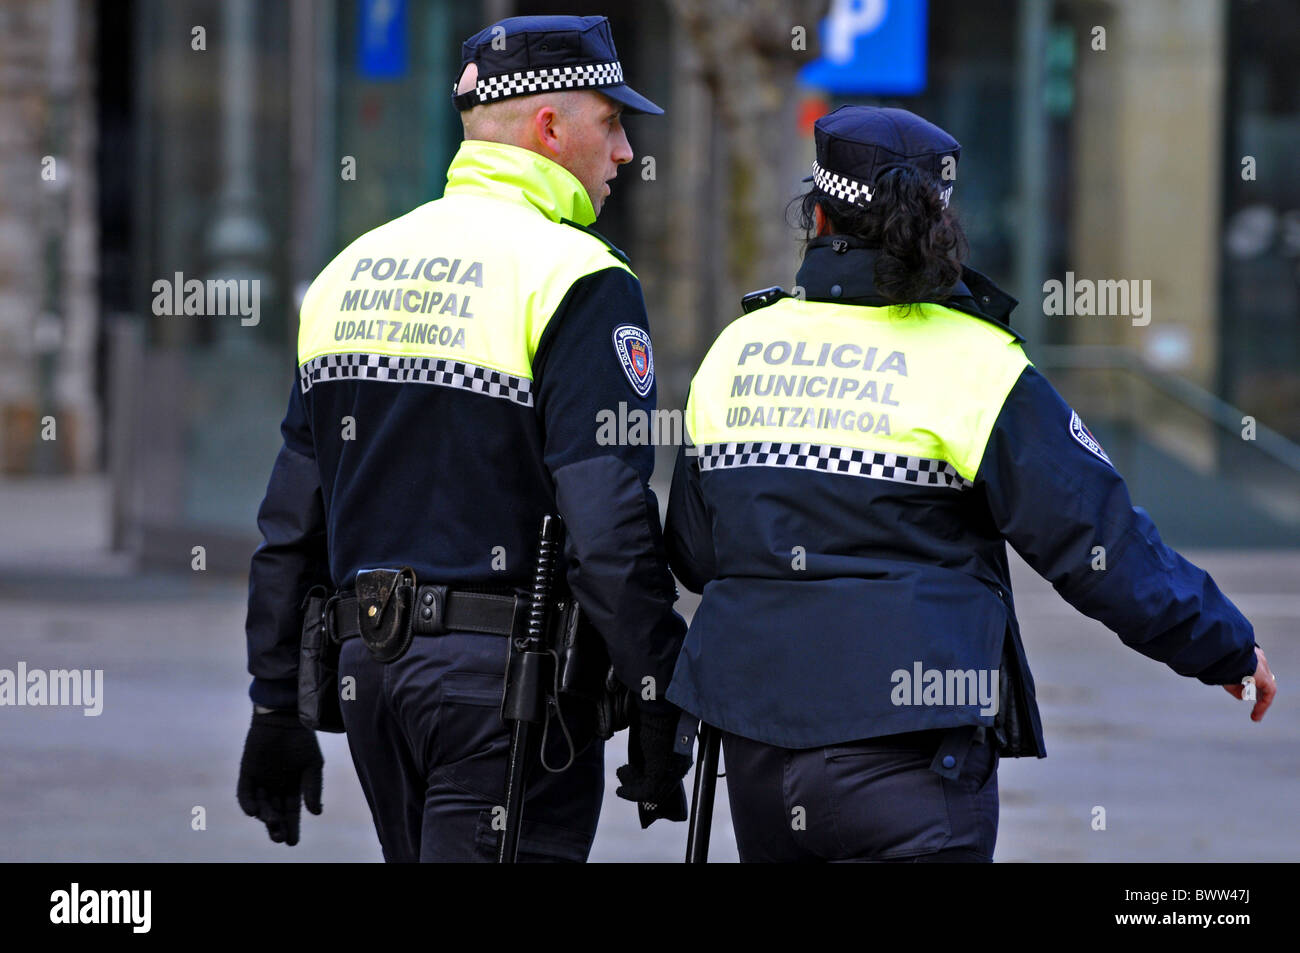 Police Officers in Northern Spain, Europe - Stock Image